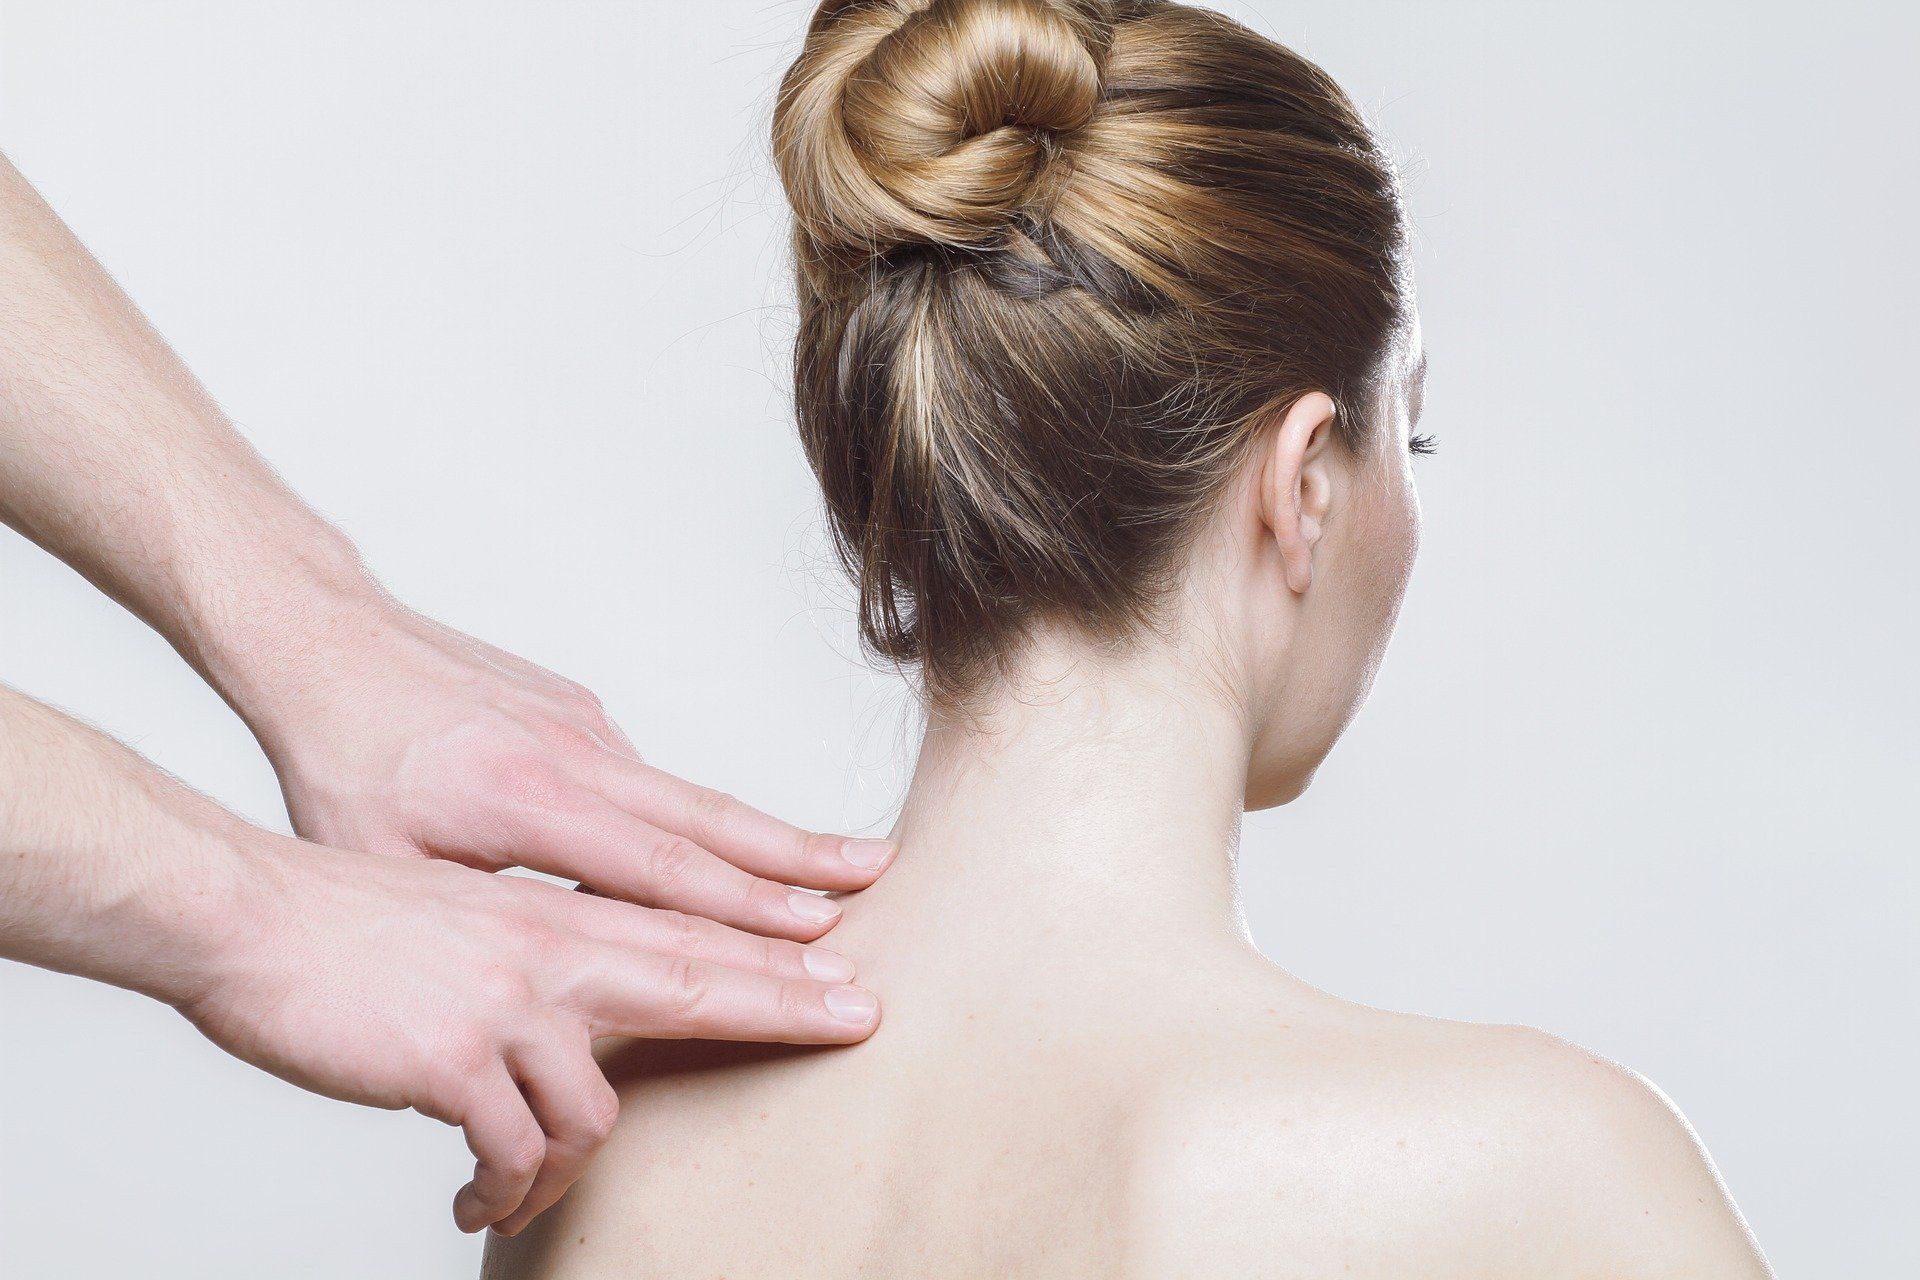 In this blog post we discuss some of the common ailments that physical therapy can treat - many whic...